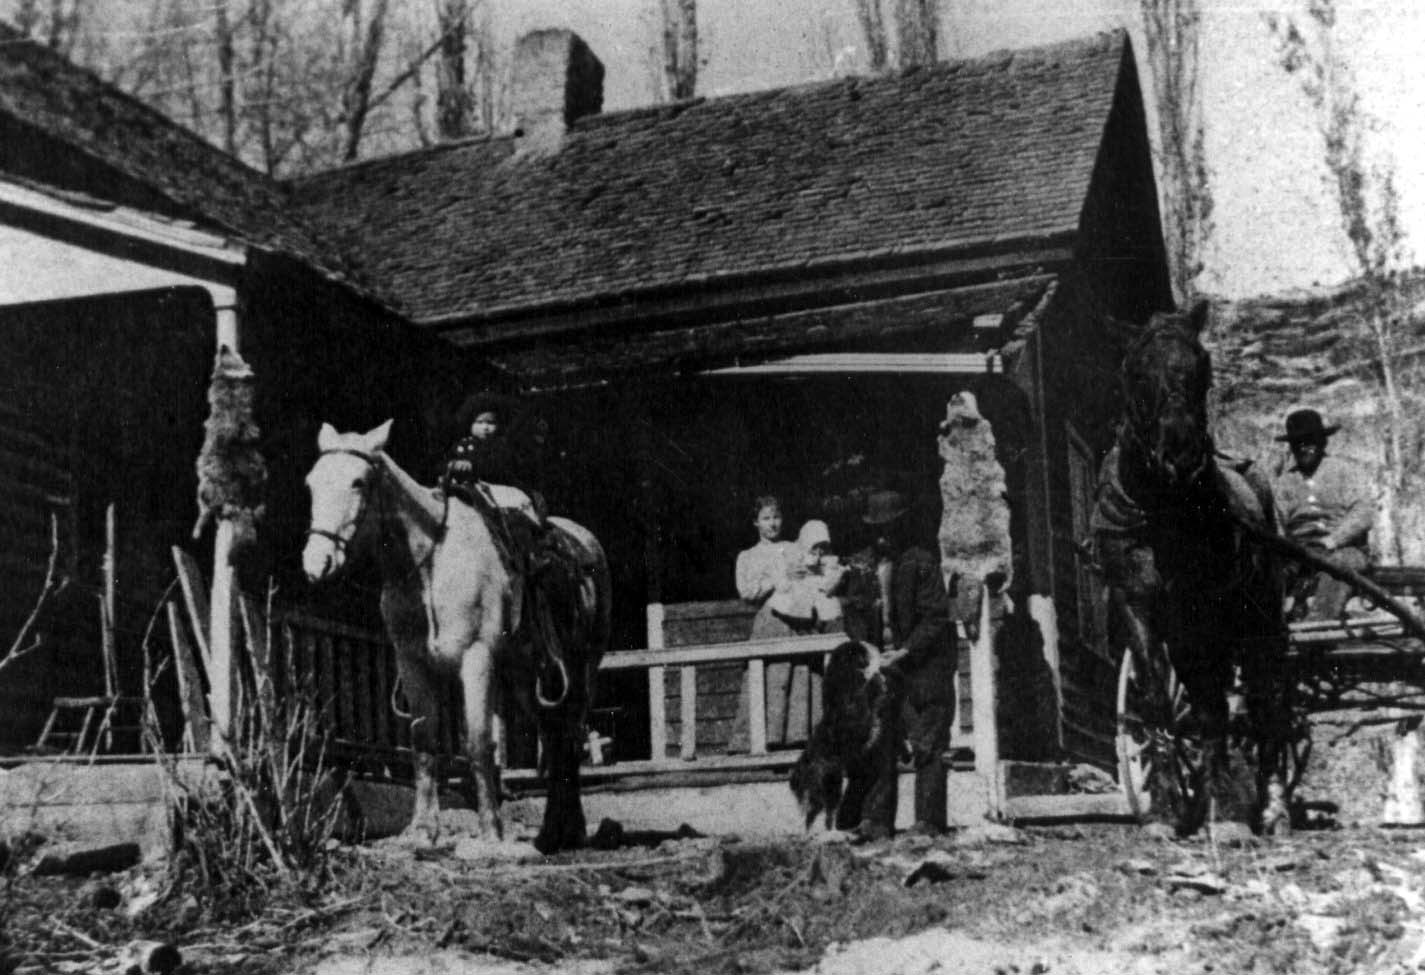 Life on the Floral Ranch after Ephraim's Death. Photo from Teton Hanks Jackman collection.